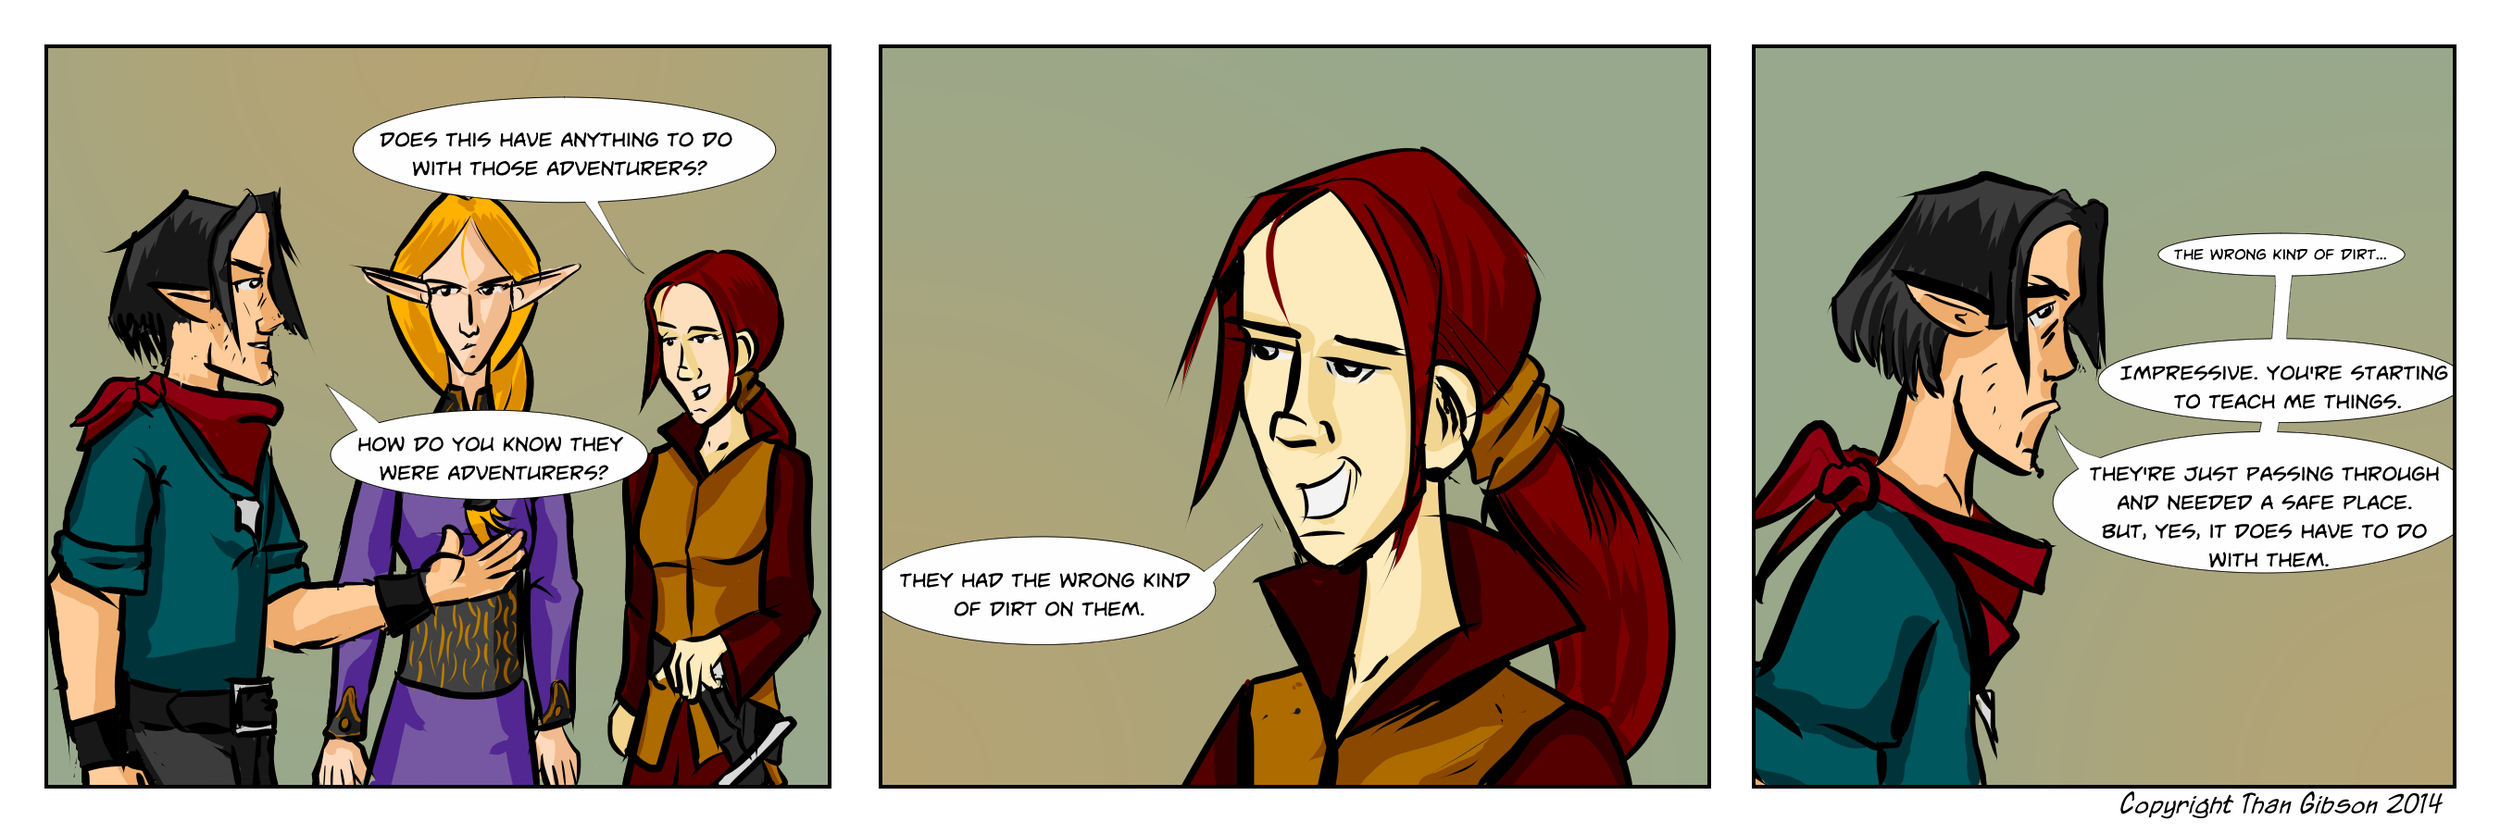 Strip 14 -Click the image for a larger view!